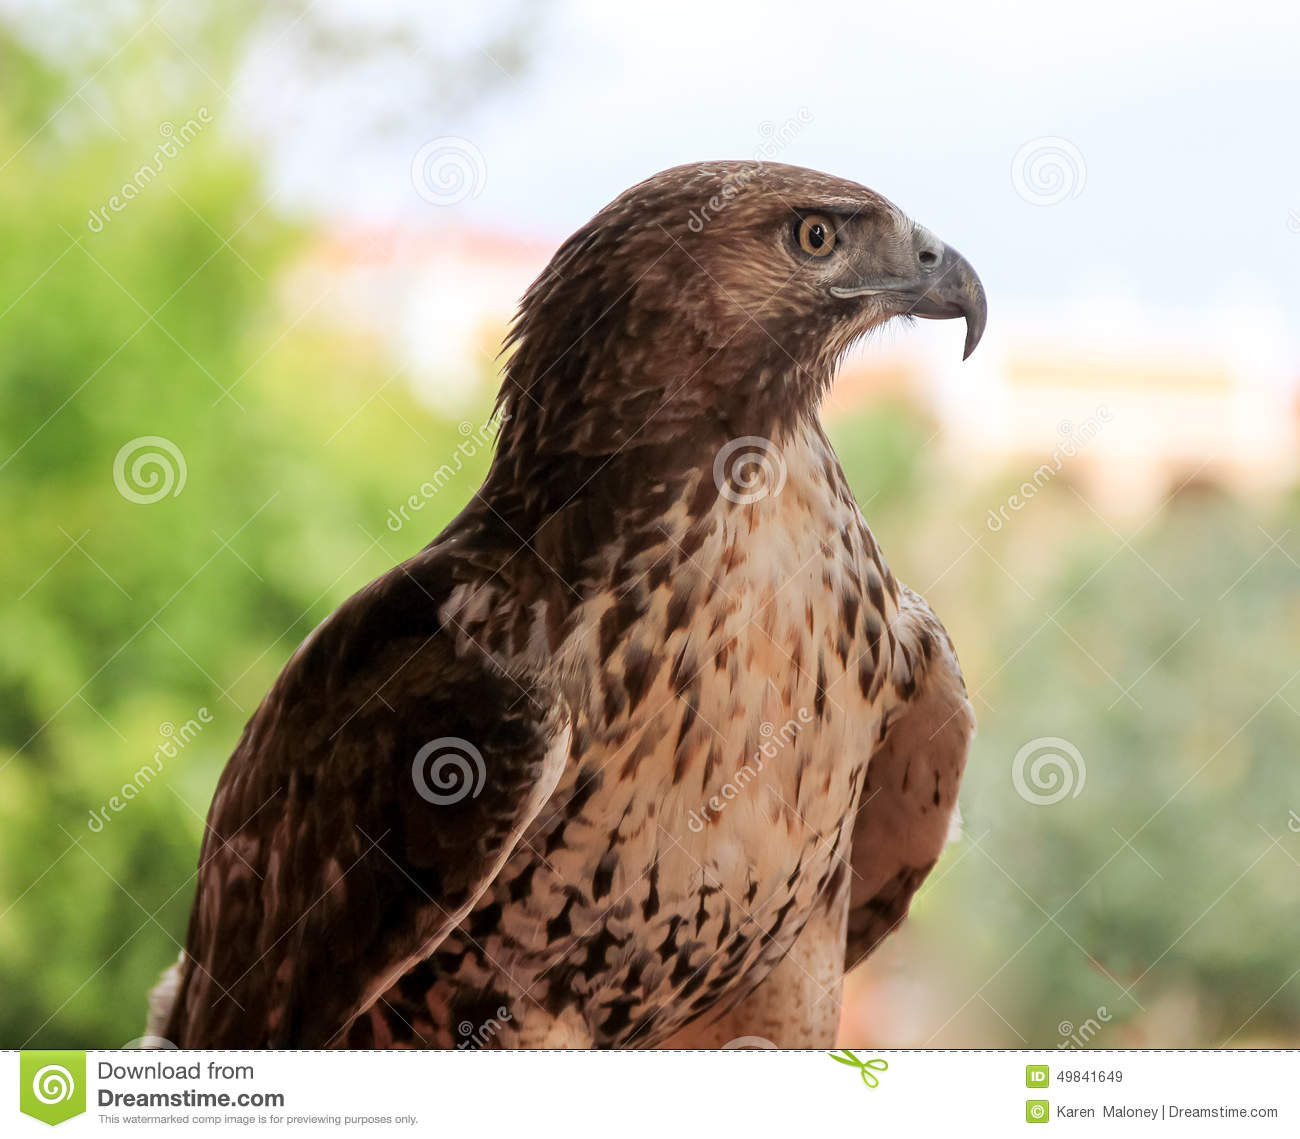 stare map with Stock Photo Bird Prey Large Brown Hawk Light Under Belly Image49841649 on Stock Photo Tabby Cat Head Profile Close Up Copy Space Portrait Against Green Brown Background Image53898937 furthermore Royalty Free Stock Images Walrus Cartoon Image25901119 also 18 Foot Python Captured Florida Everglades further Stock Image Old Farmers Threshing Wheat Animals Vintage Country House Two Girls Looking Work Image35693491 in addition Royalty Free Stock Image Usa National Flag Image5169146.